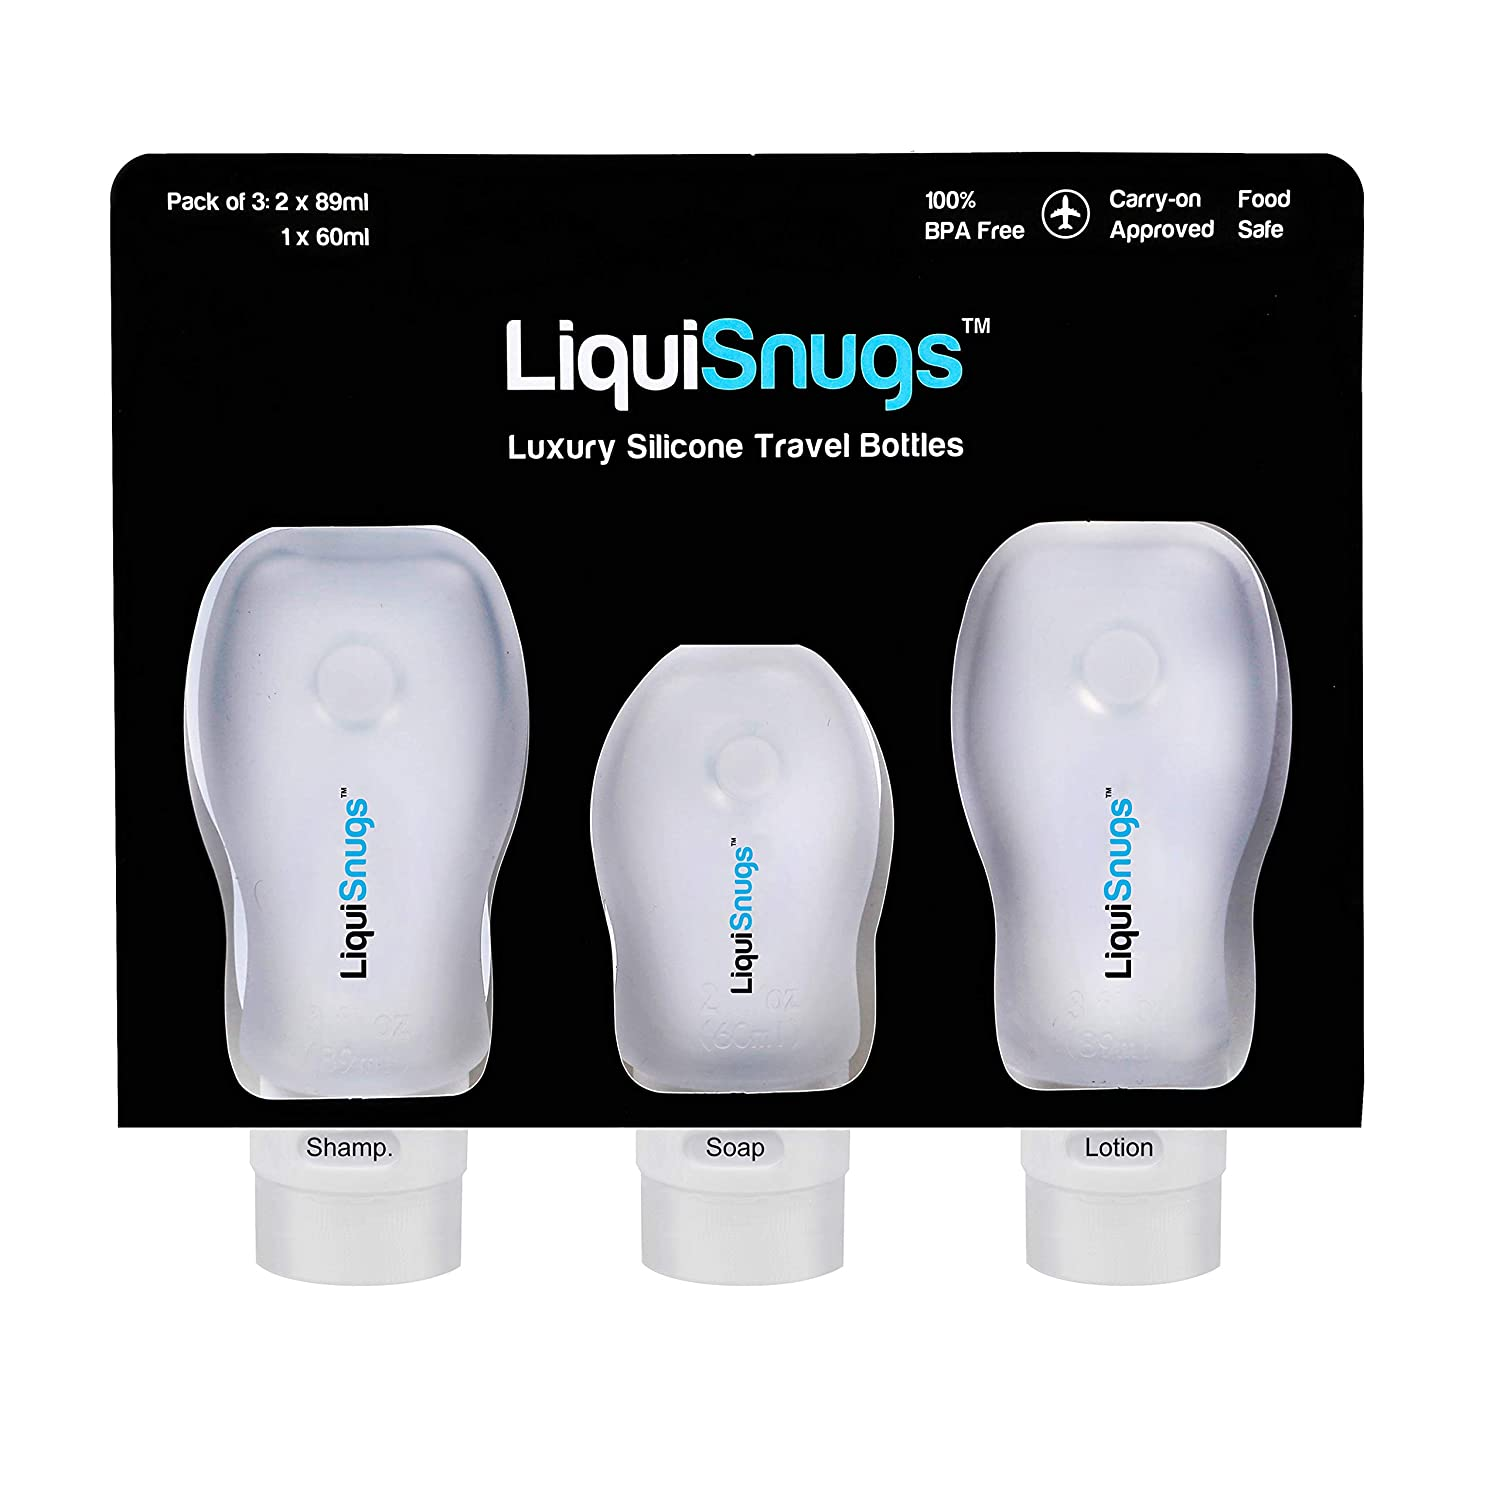 Travel size squeezable silicone bottles